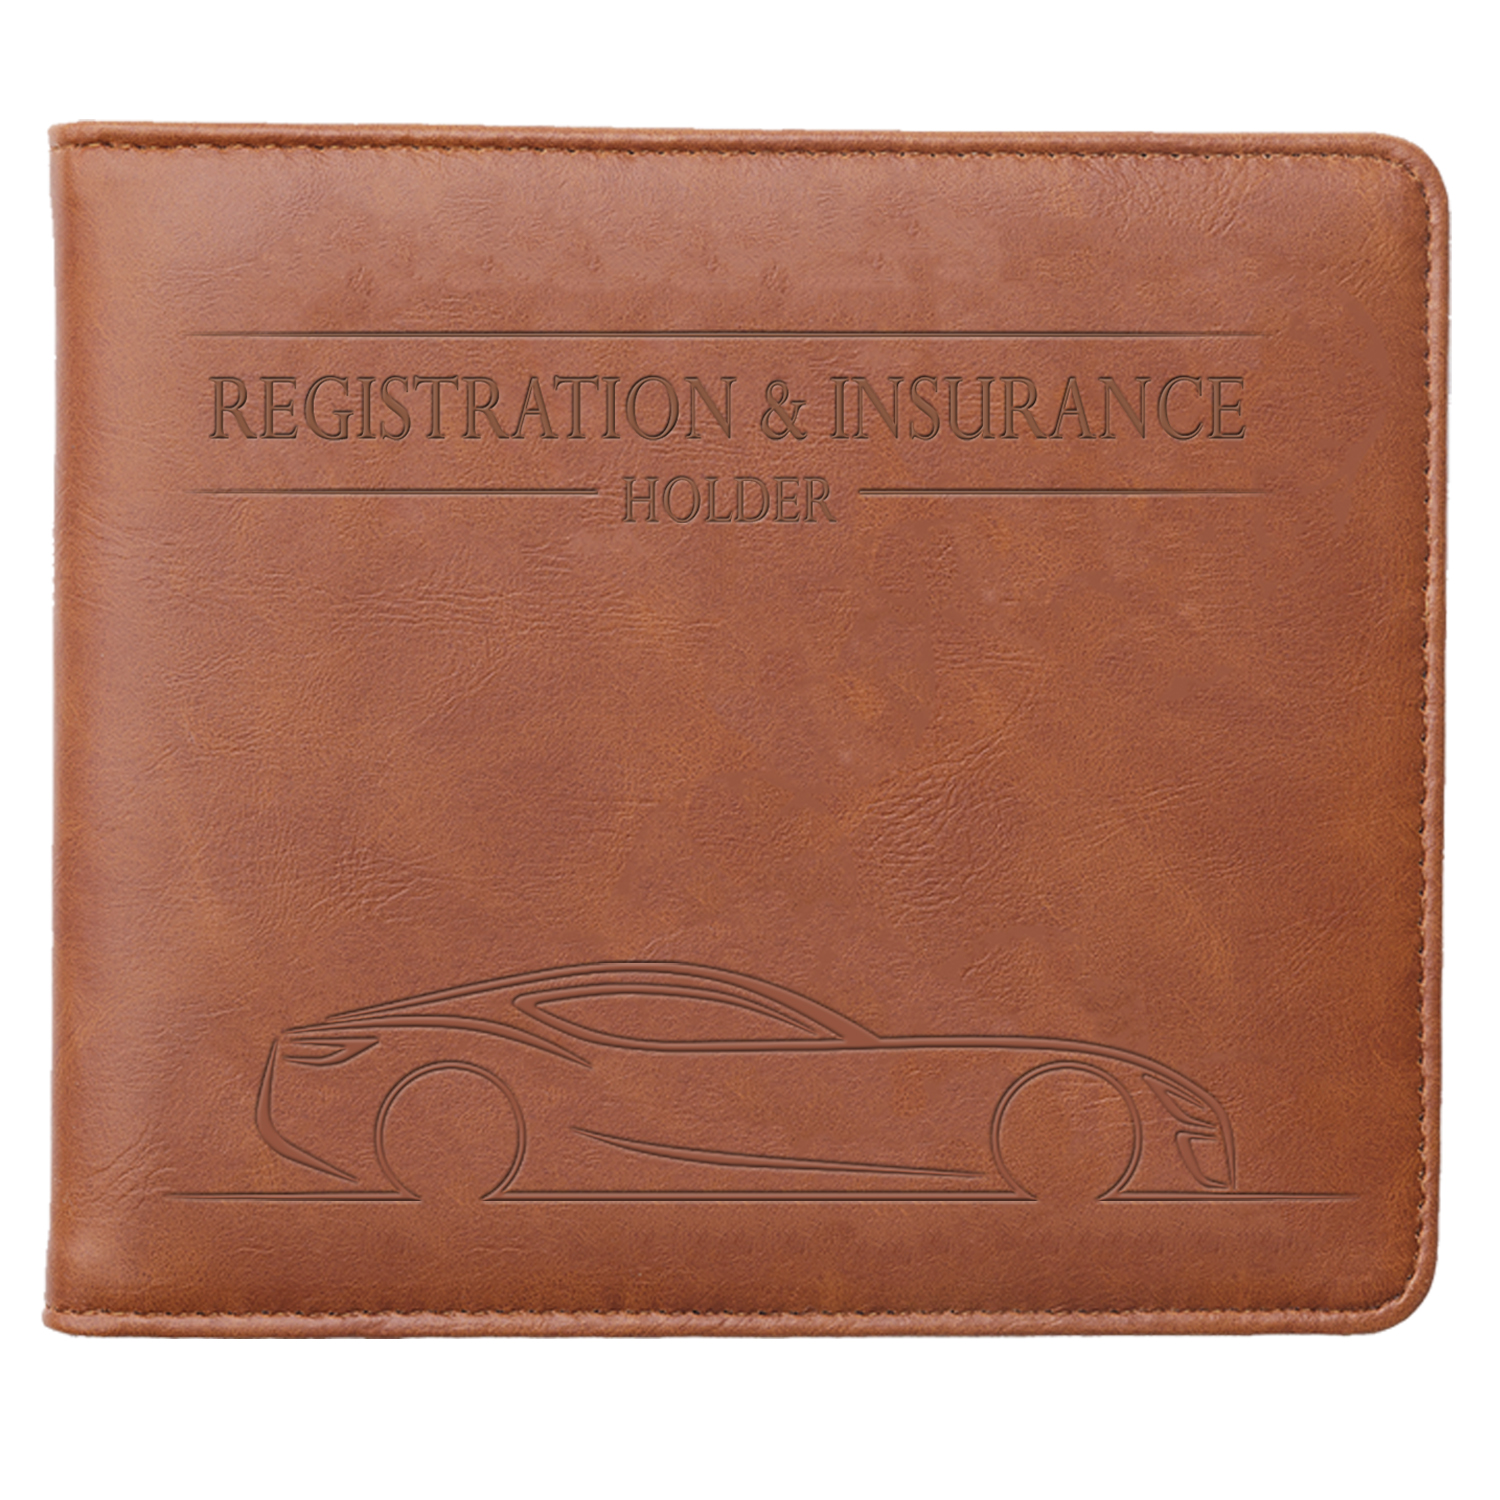 Tan Auto Truck Paperwork Holder with 7 Pockets /& Magnetic Closure Leather Vehicle Glove Box Documents Organizer Wallet Case Car Insurance and Registration Card Holder